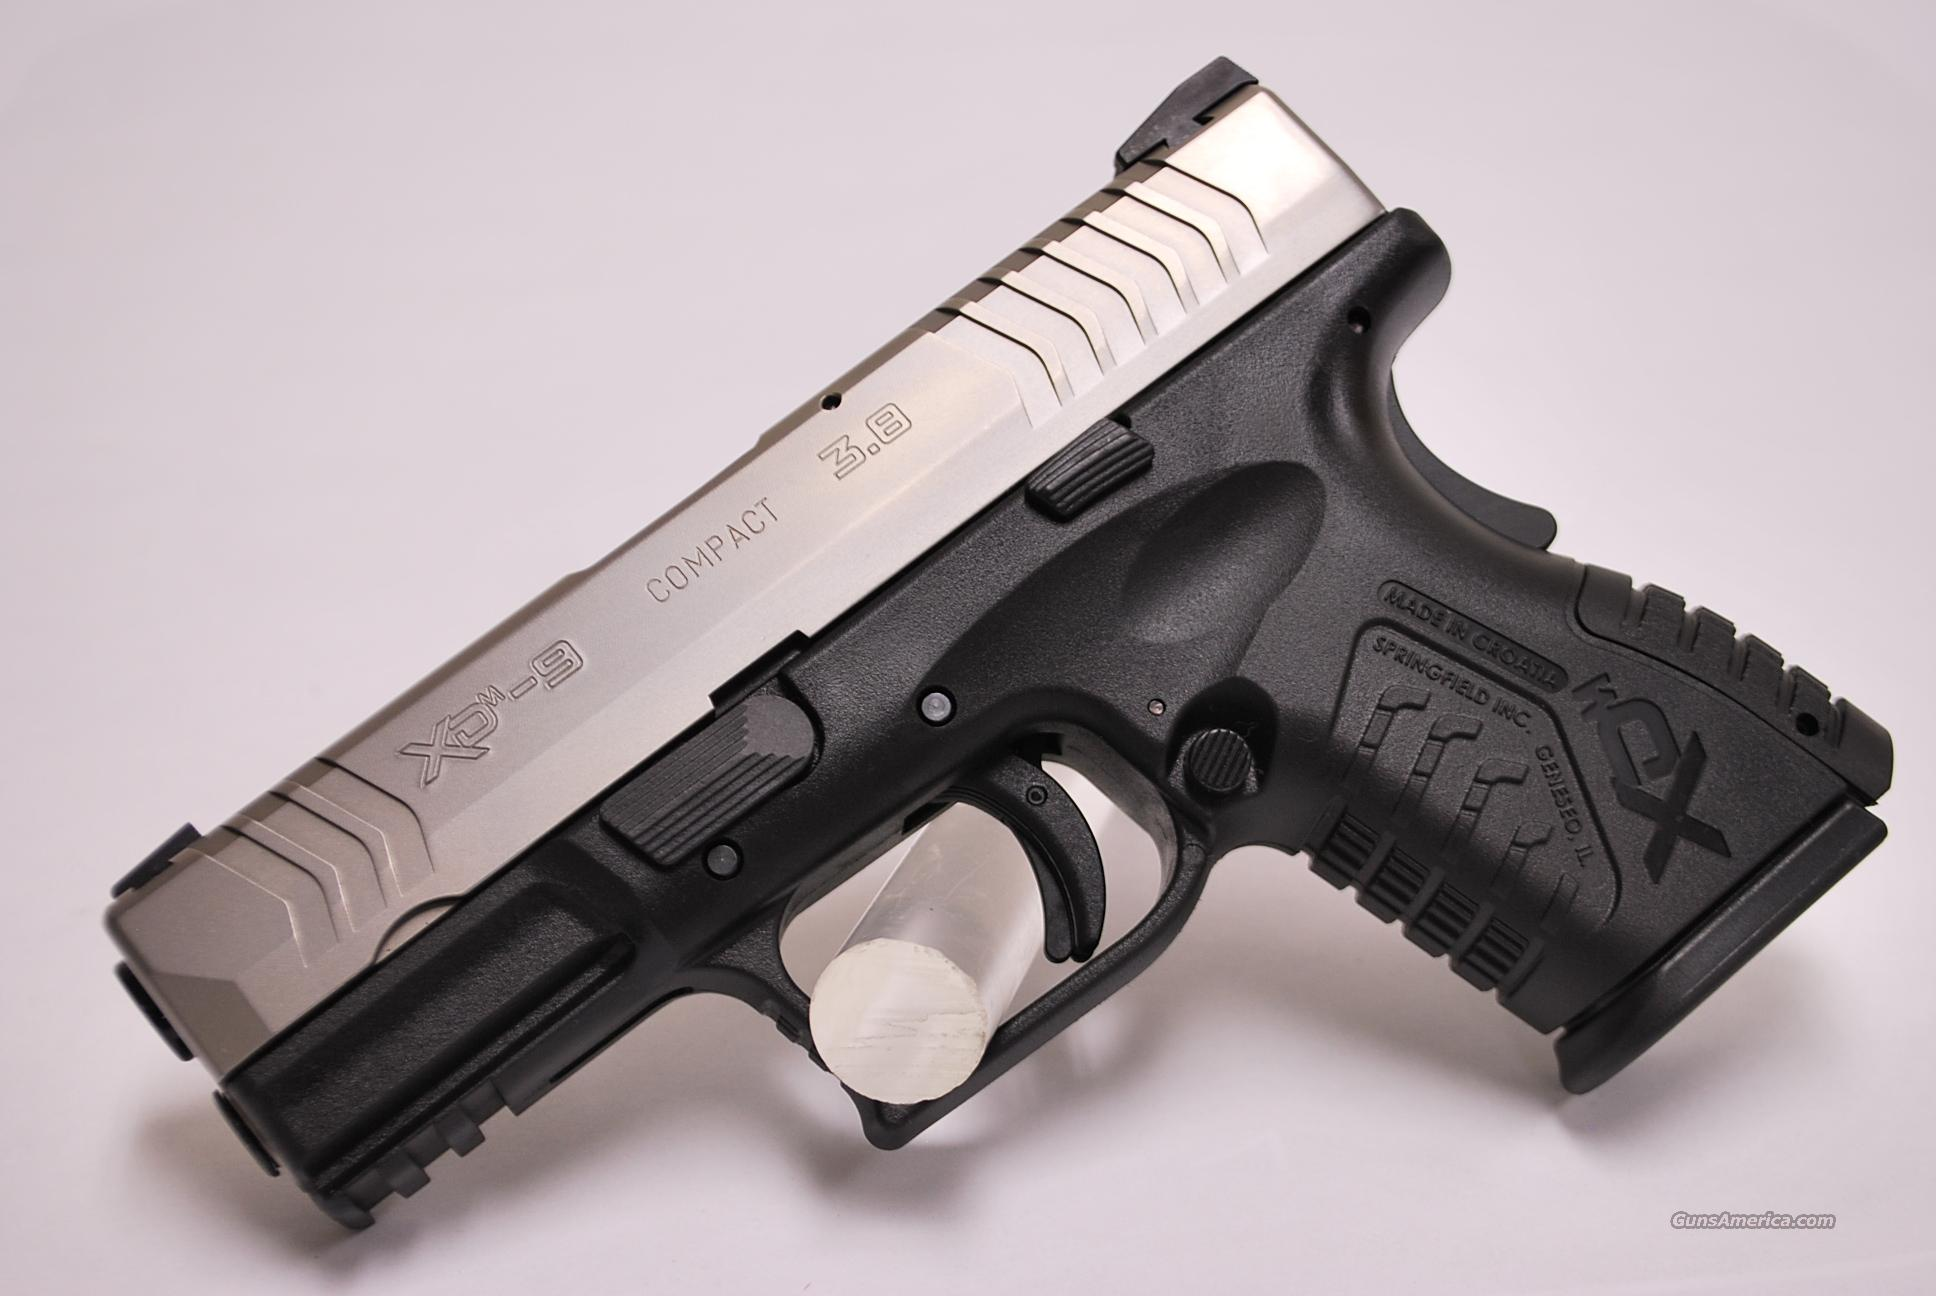 Springfield XDM 3.8 Compact, 9mm, NEW  Guns > Pistols > Springfield Armory Pistols > XD (eXtreme Duty)